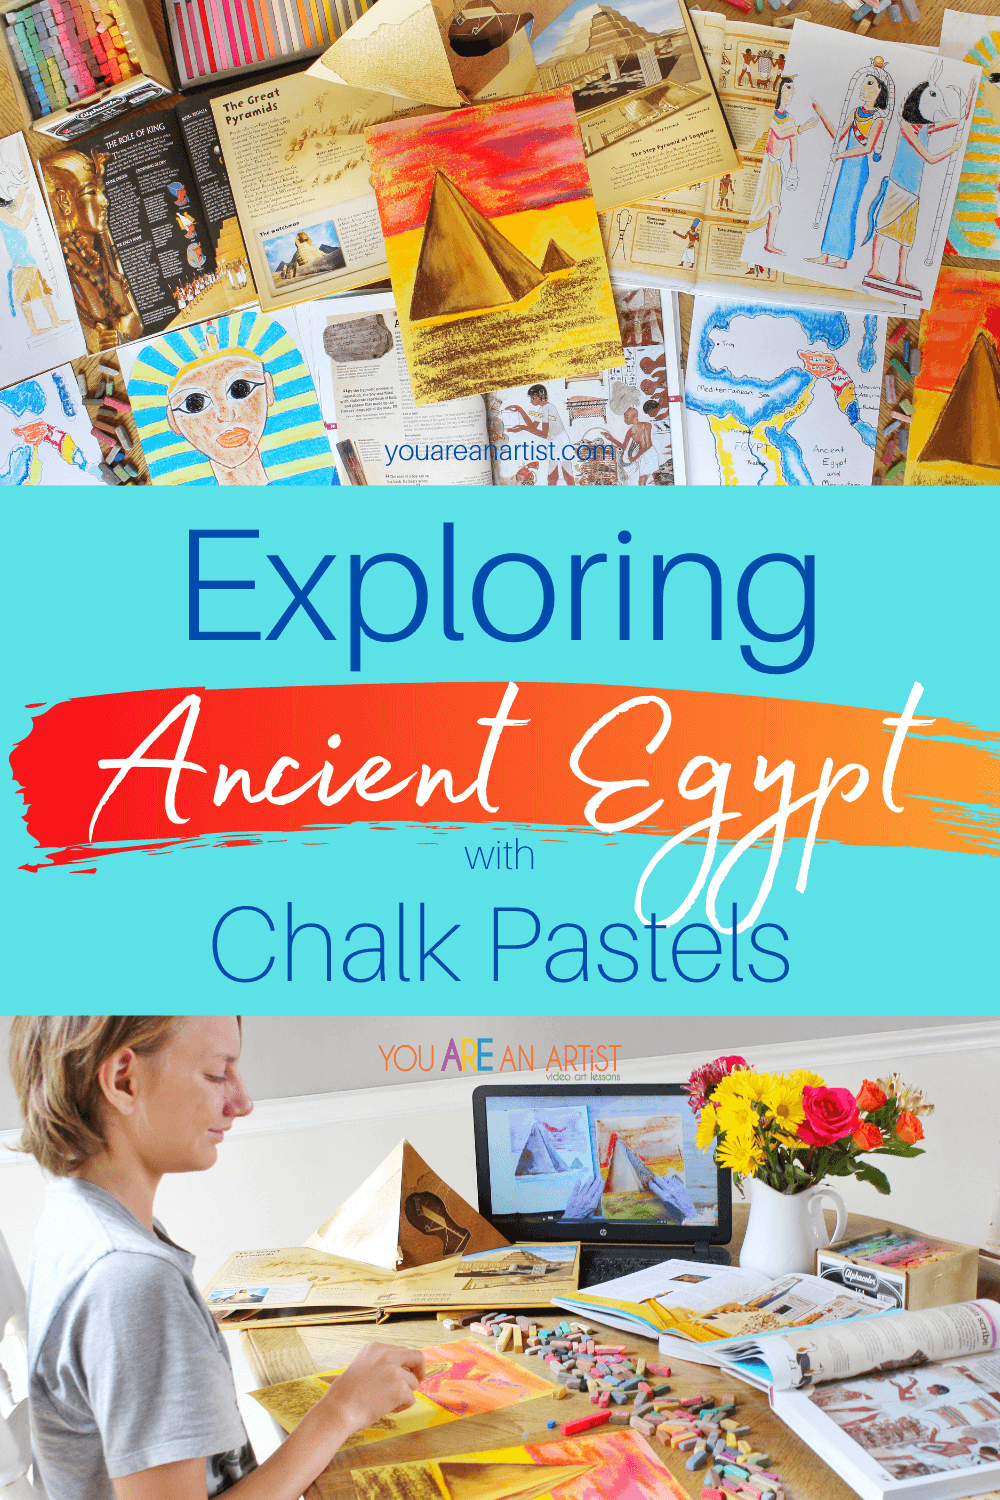 Ancient Egypt Lessons Perfect For Your Homeschool: If you are looking for resources for your ancient Egypt lessons, then be sure to check out Nana's ancient Egypt chalk pastels! They are perfect for adding a bit of hands-on art to your next history lesson. #ancientegyptlessons #exploringancientegypt #exploringancientegyptwithchalkpastels #ancientegypt #chalkpastelartlessons